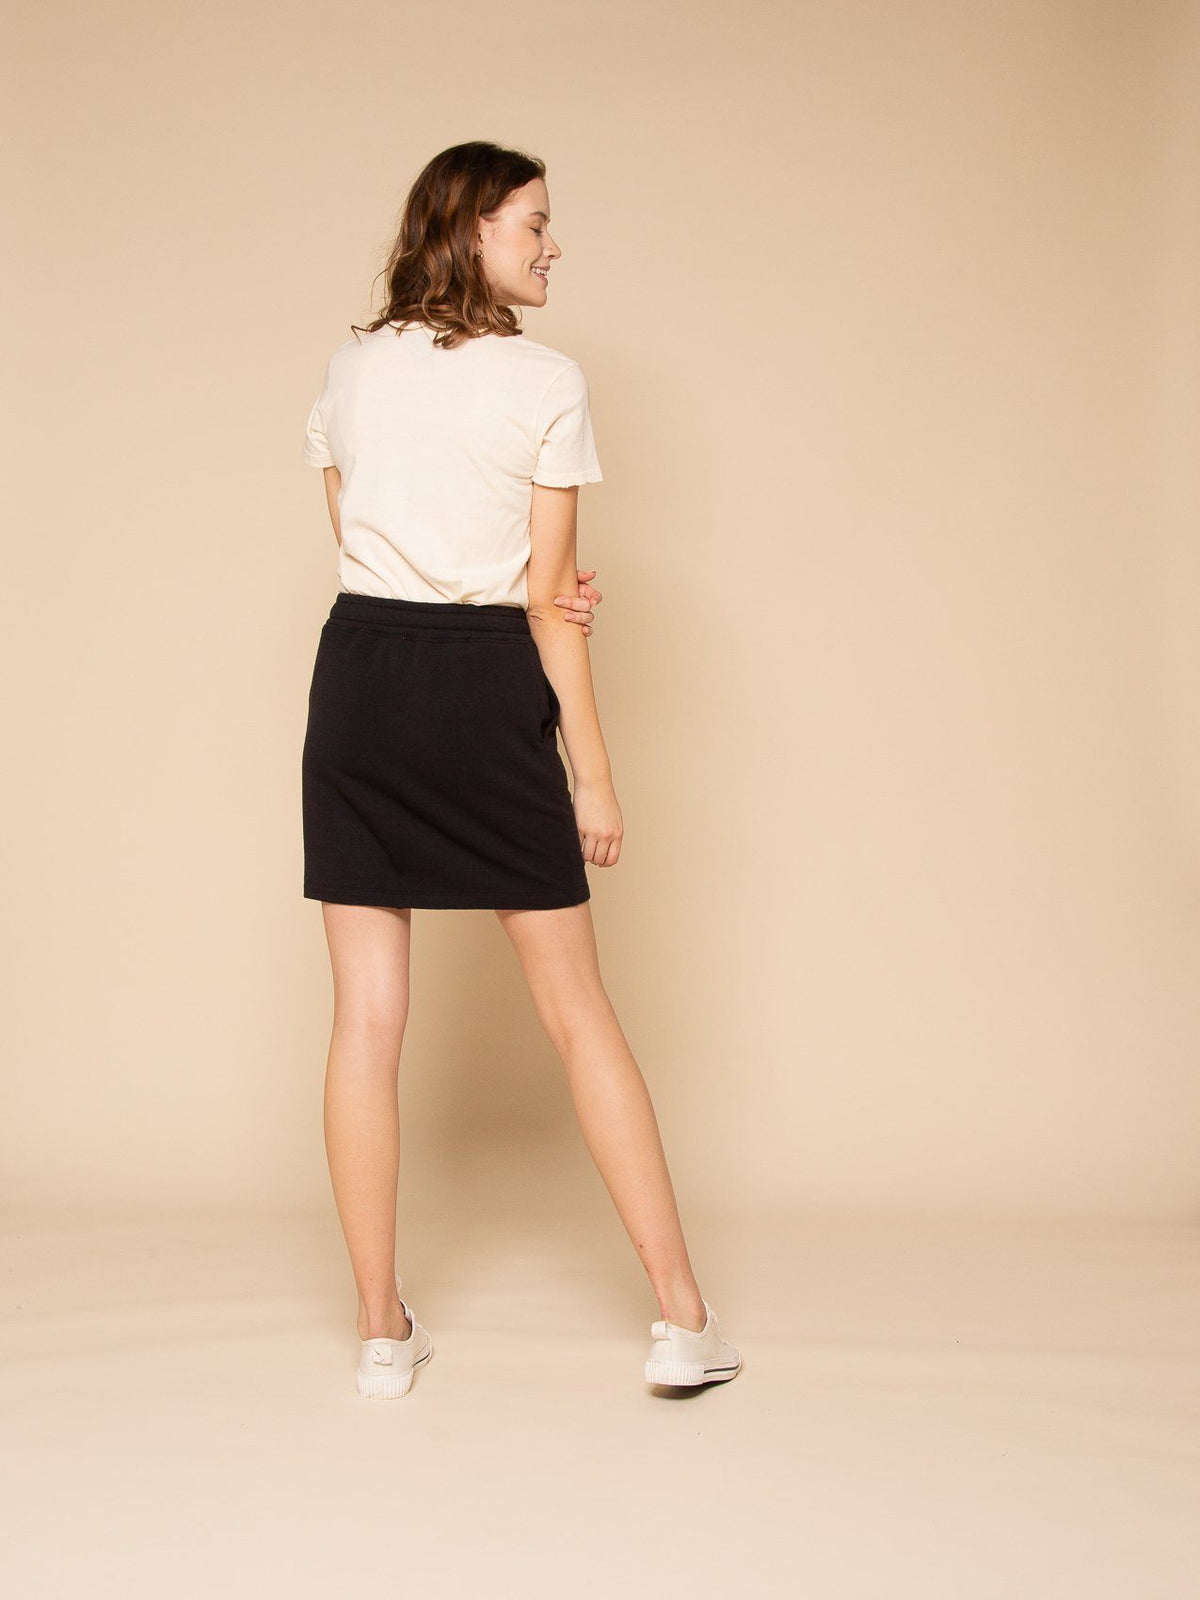 RED HERRING SKIRT - PREPACK 6 UNITS